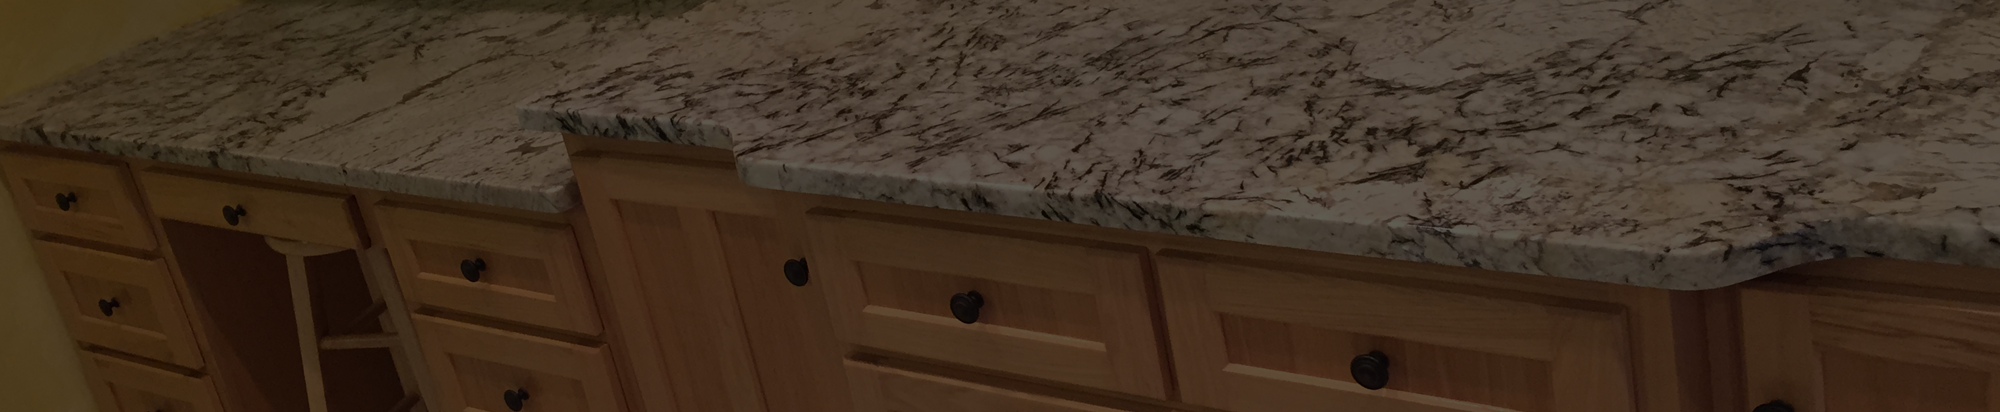 Modern Countertops Granite Wallpaper